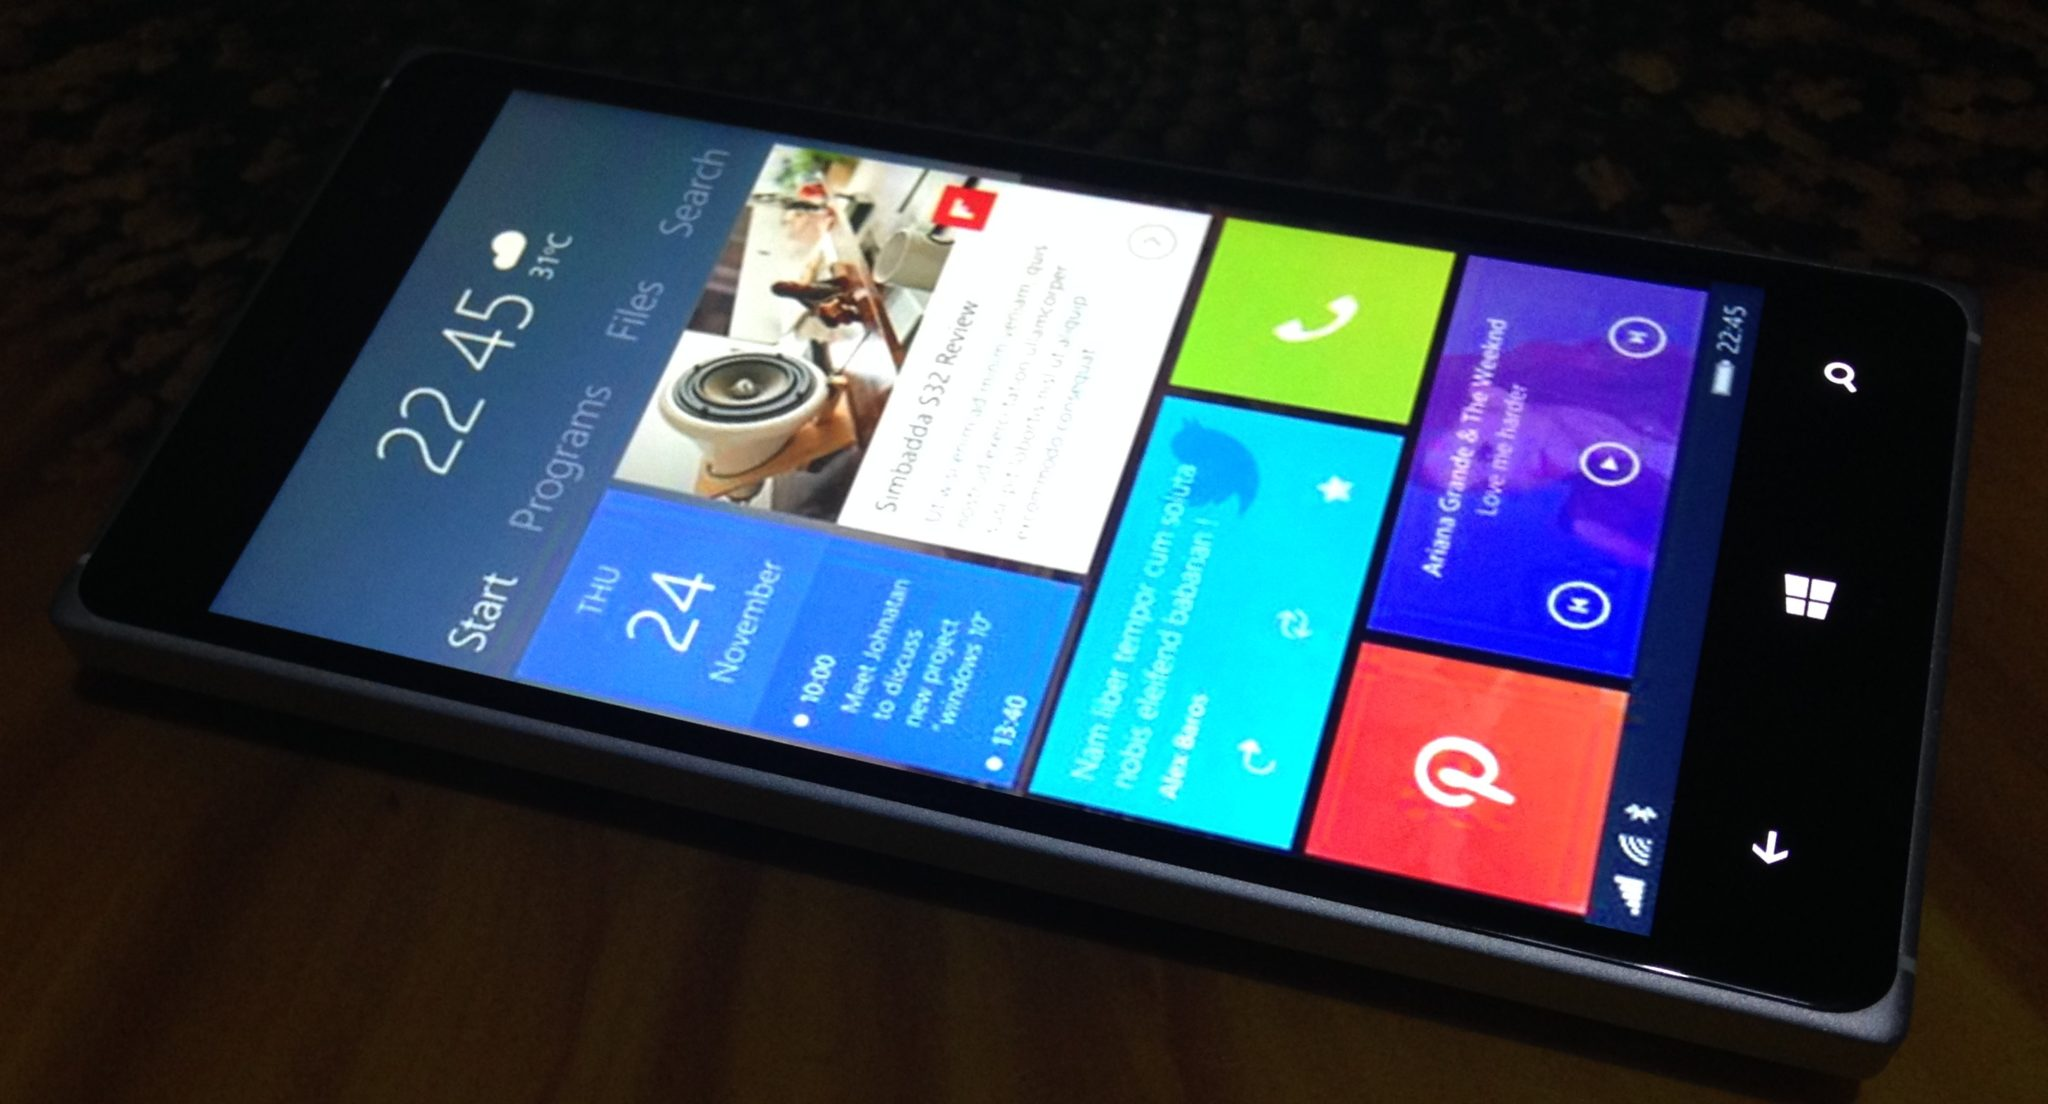 Windows Phone, Which Was Already Dead, Gets Another Stake Through Its Corpse